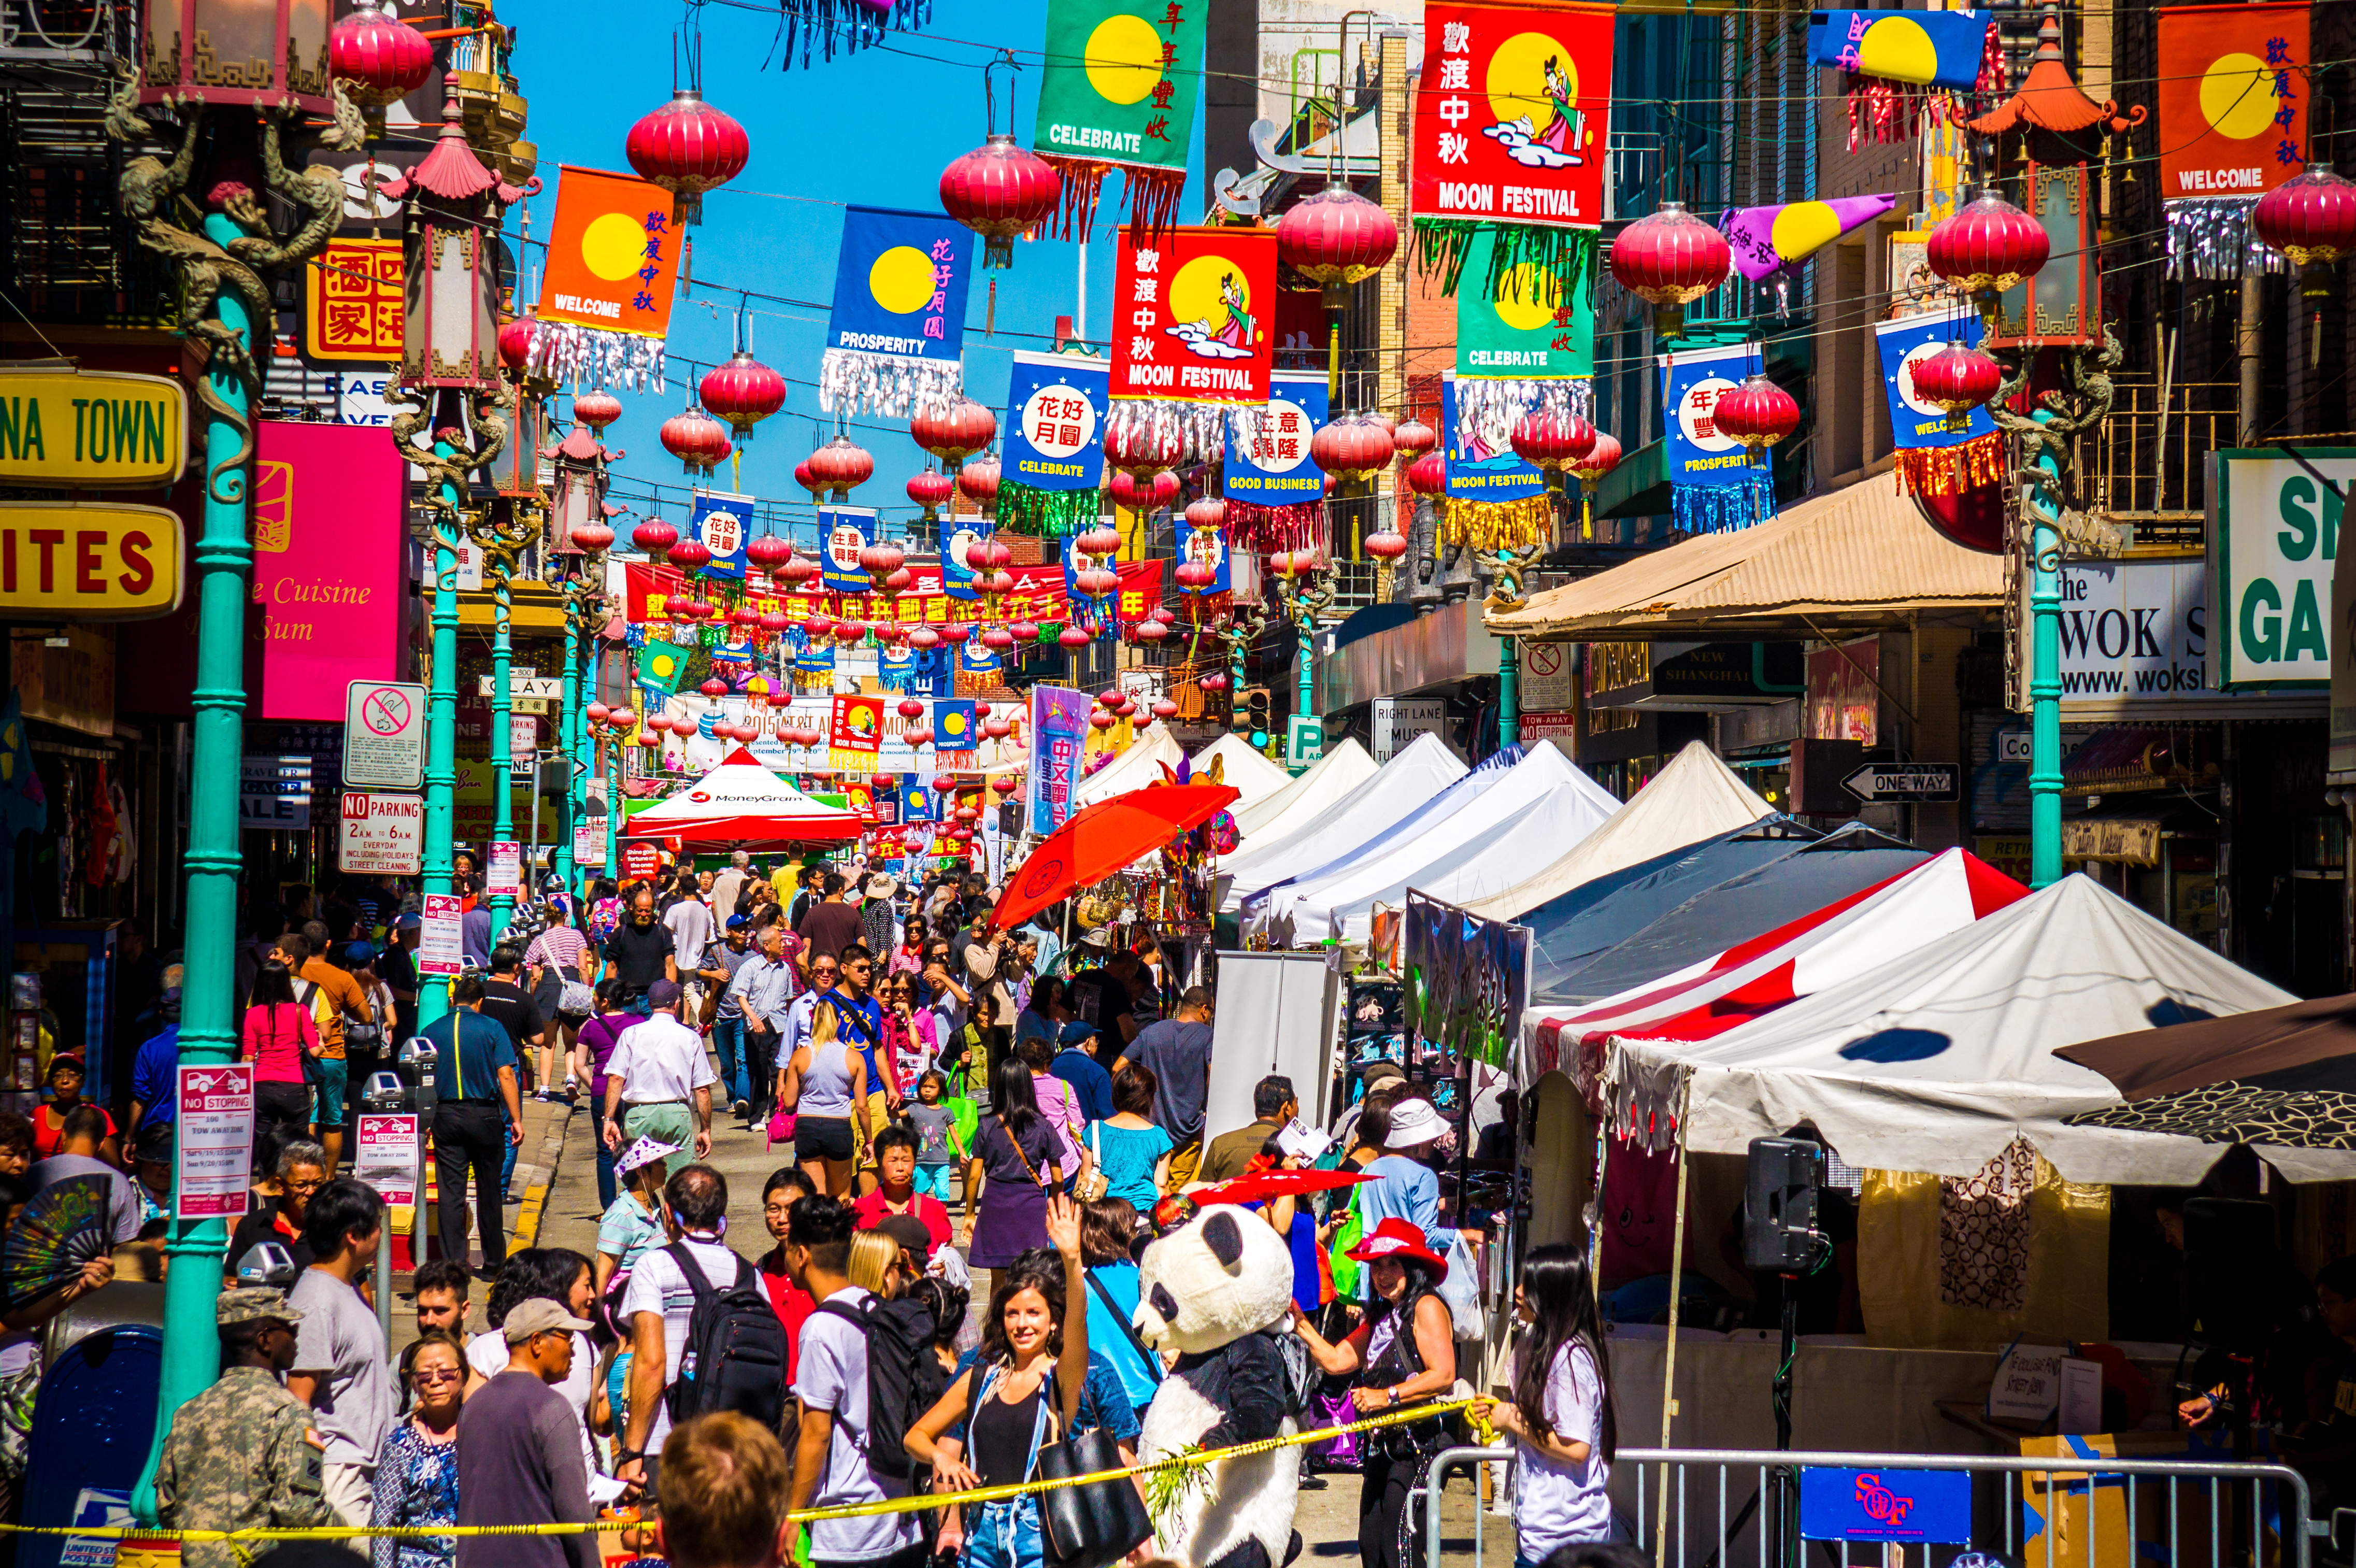 San Francisco's Chinatown is full of colour, contrasts and fascinating cuisine. There can be no better place to eat a spring roll!